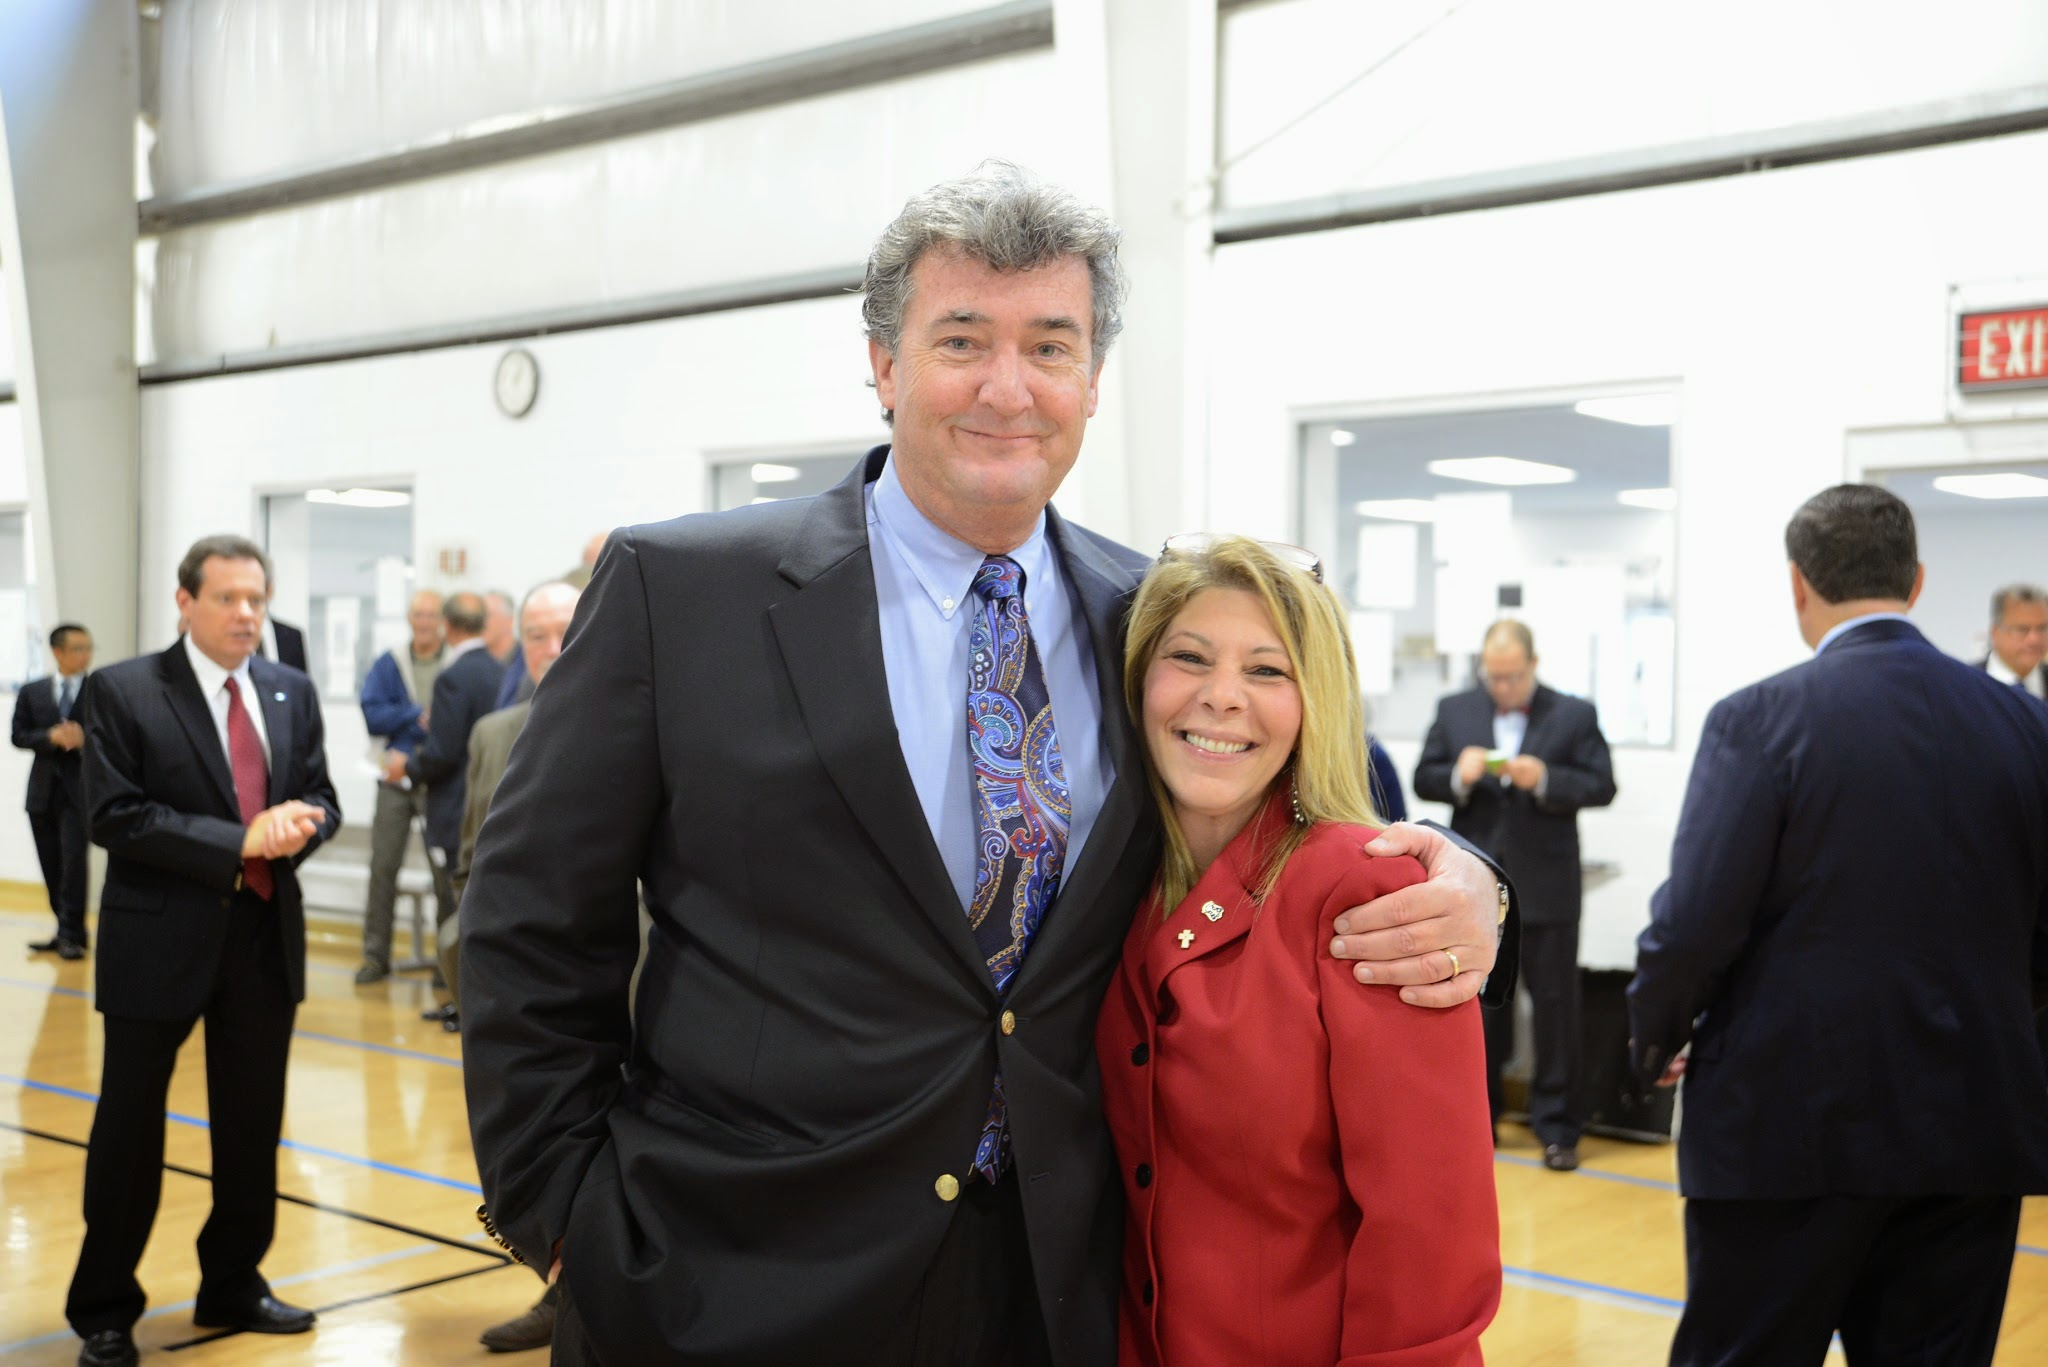 Photo: Reps. Robert Craven and Doreen Costa attend the commissioning of Toray Plastics' co-generation facility in North Kingstown on September 25, 2014.